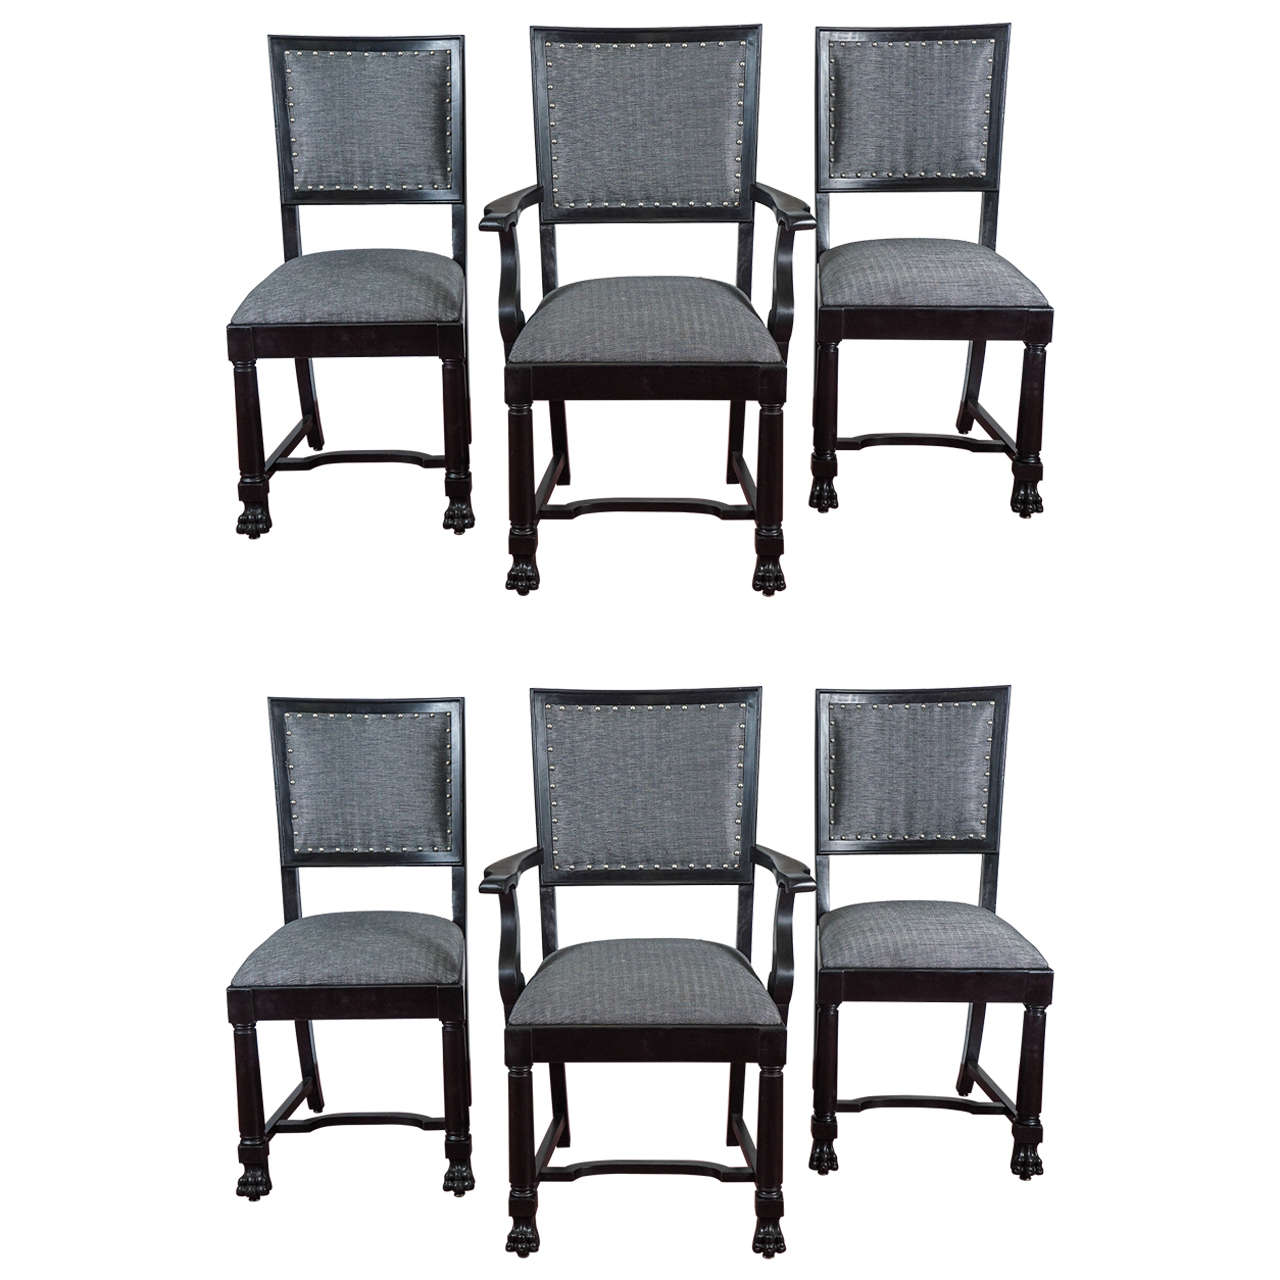 Ebonized arts and crafts style dining chairs for sale at 1stdibs - Arts and crafts dining room furniture ...